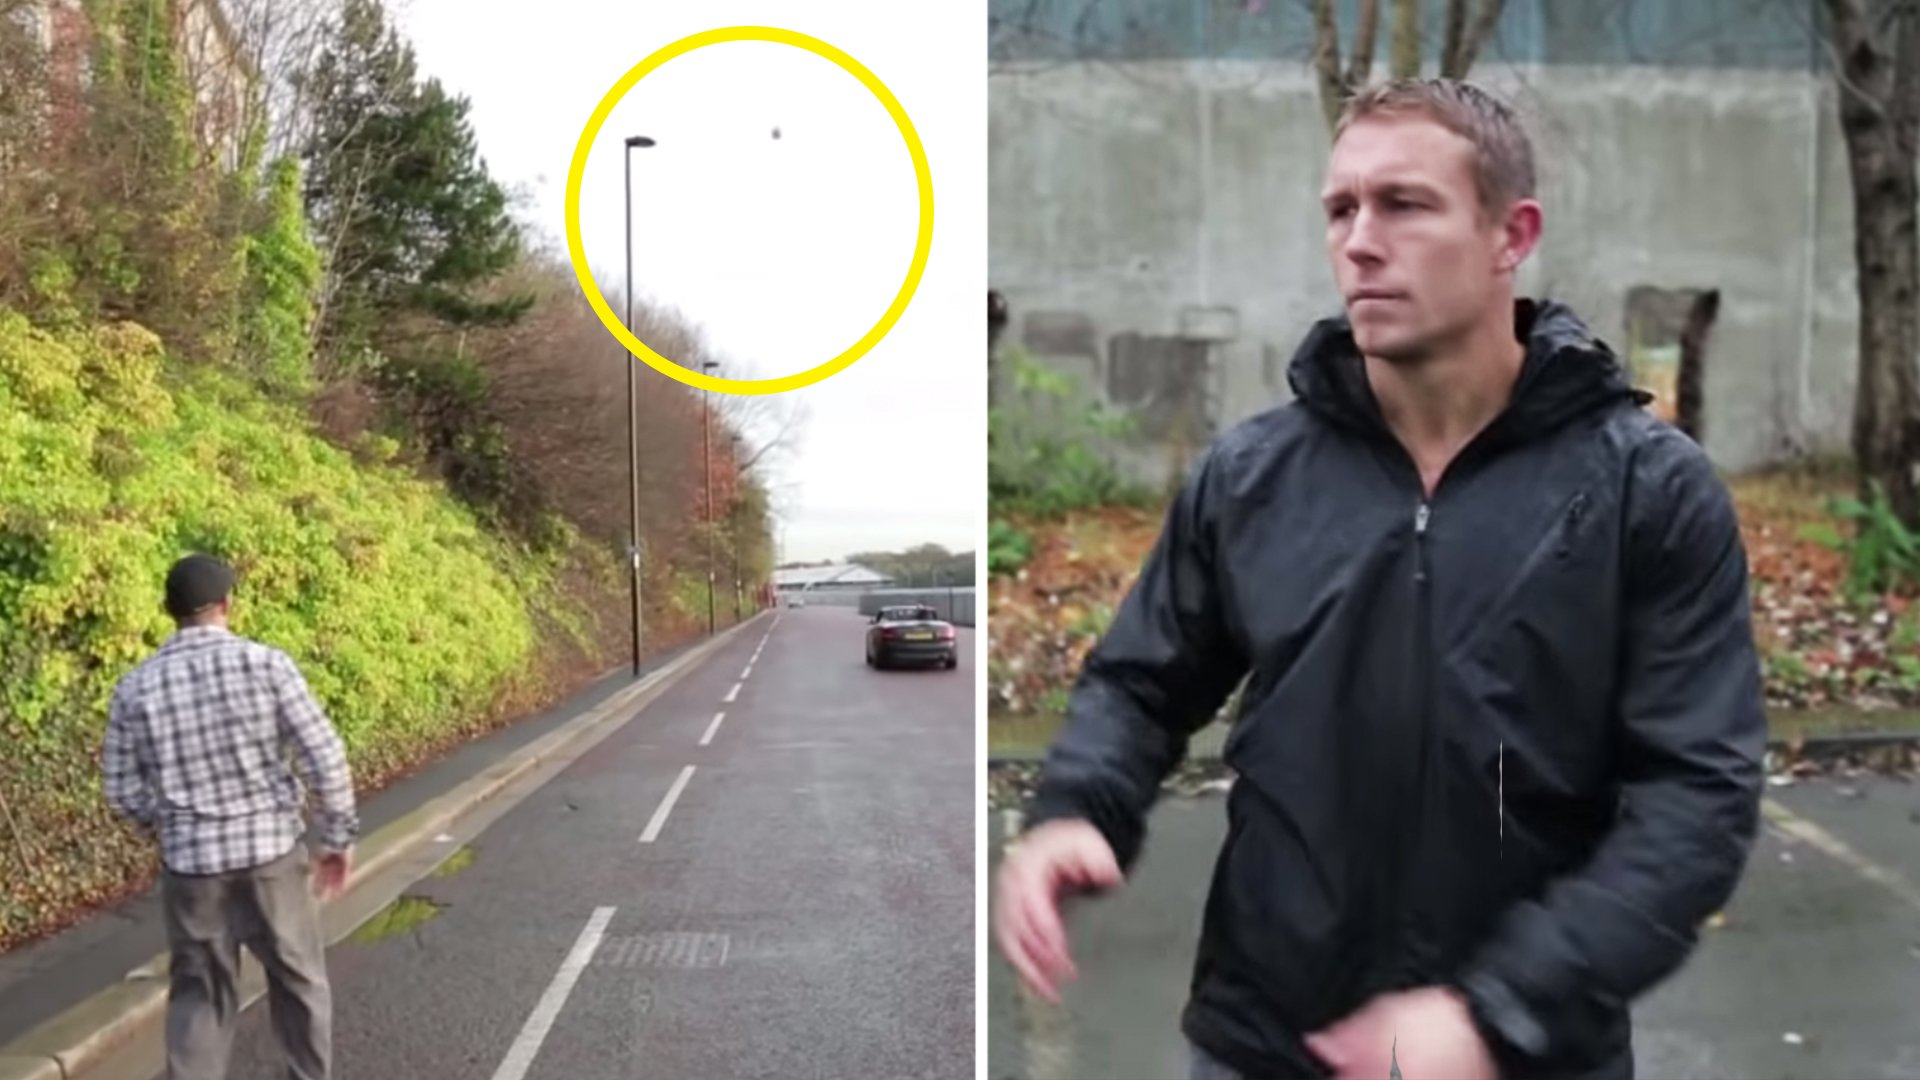 Jonny Wilkinson trick shot compilation is going viral again 10 years after first release